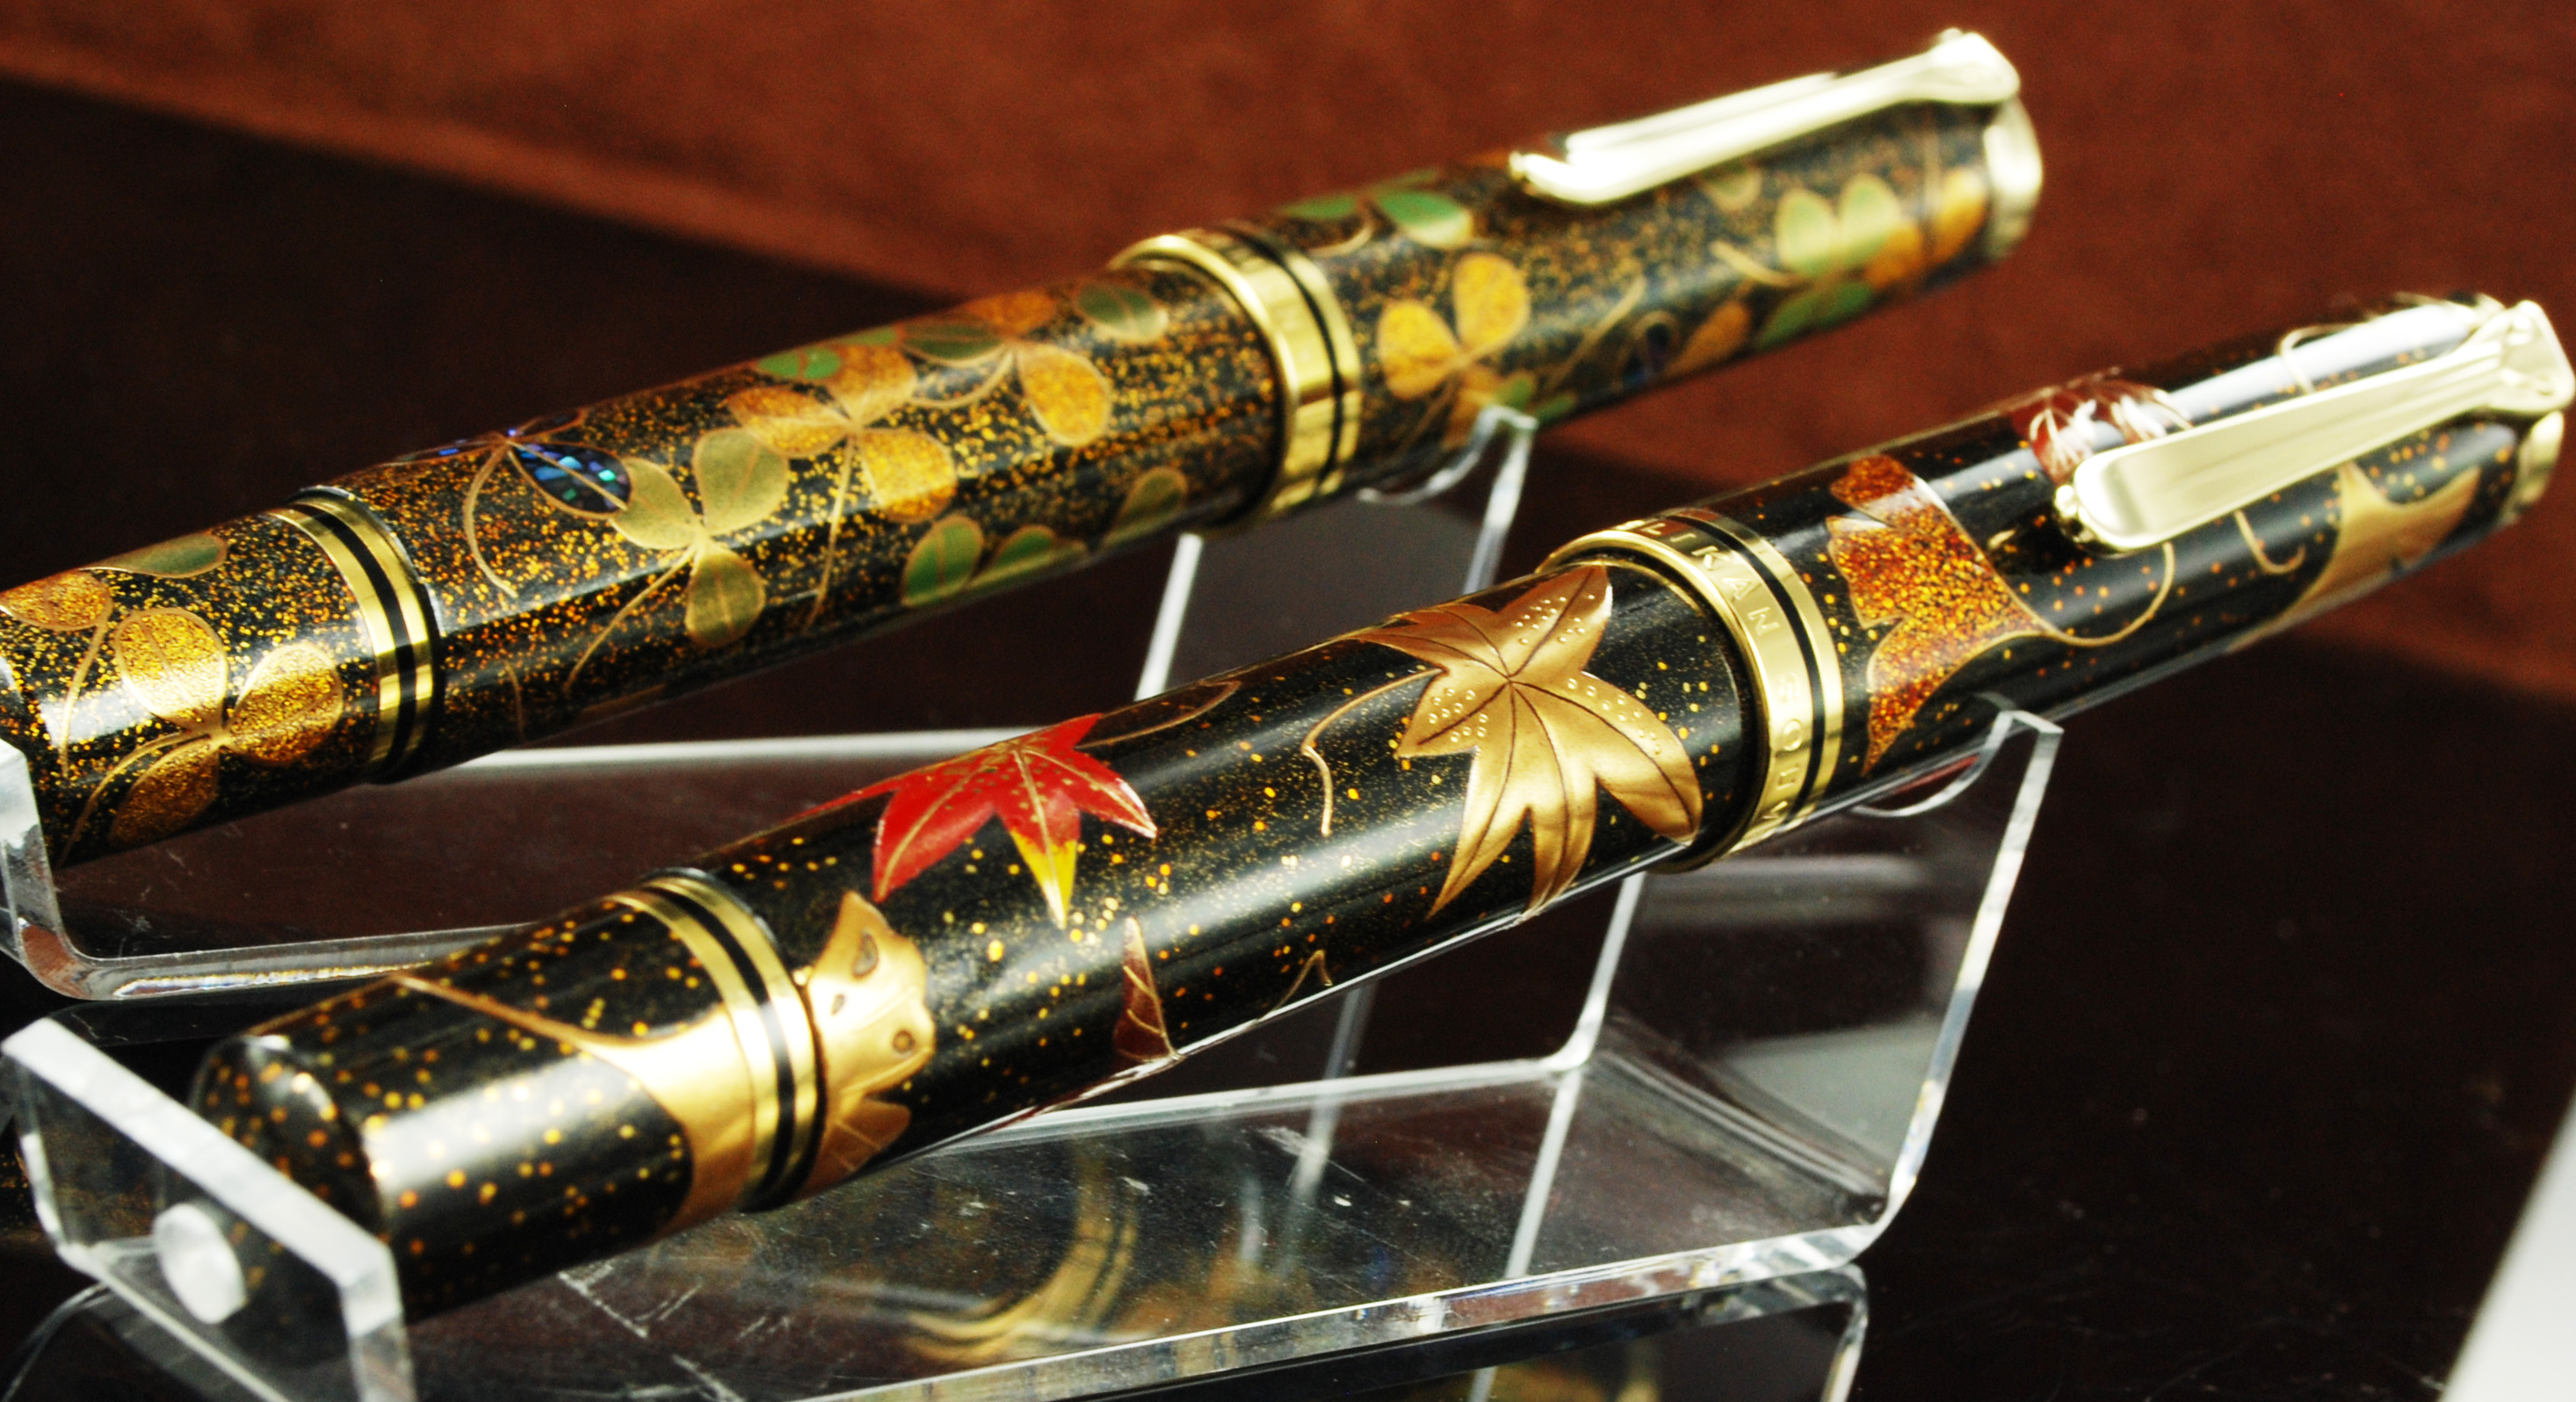 Pelikan Maki-e Maki-e Ginki & Maple Leaves(front)